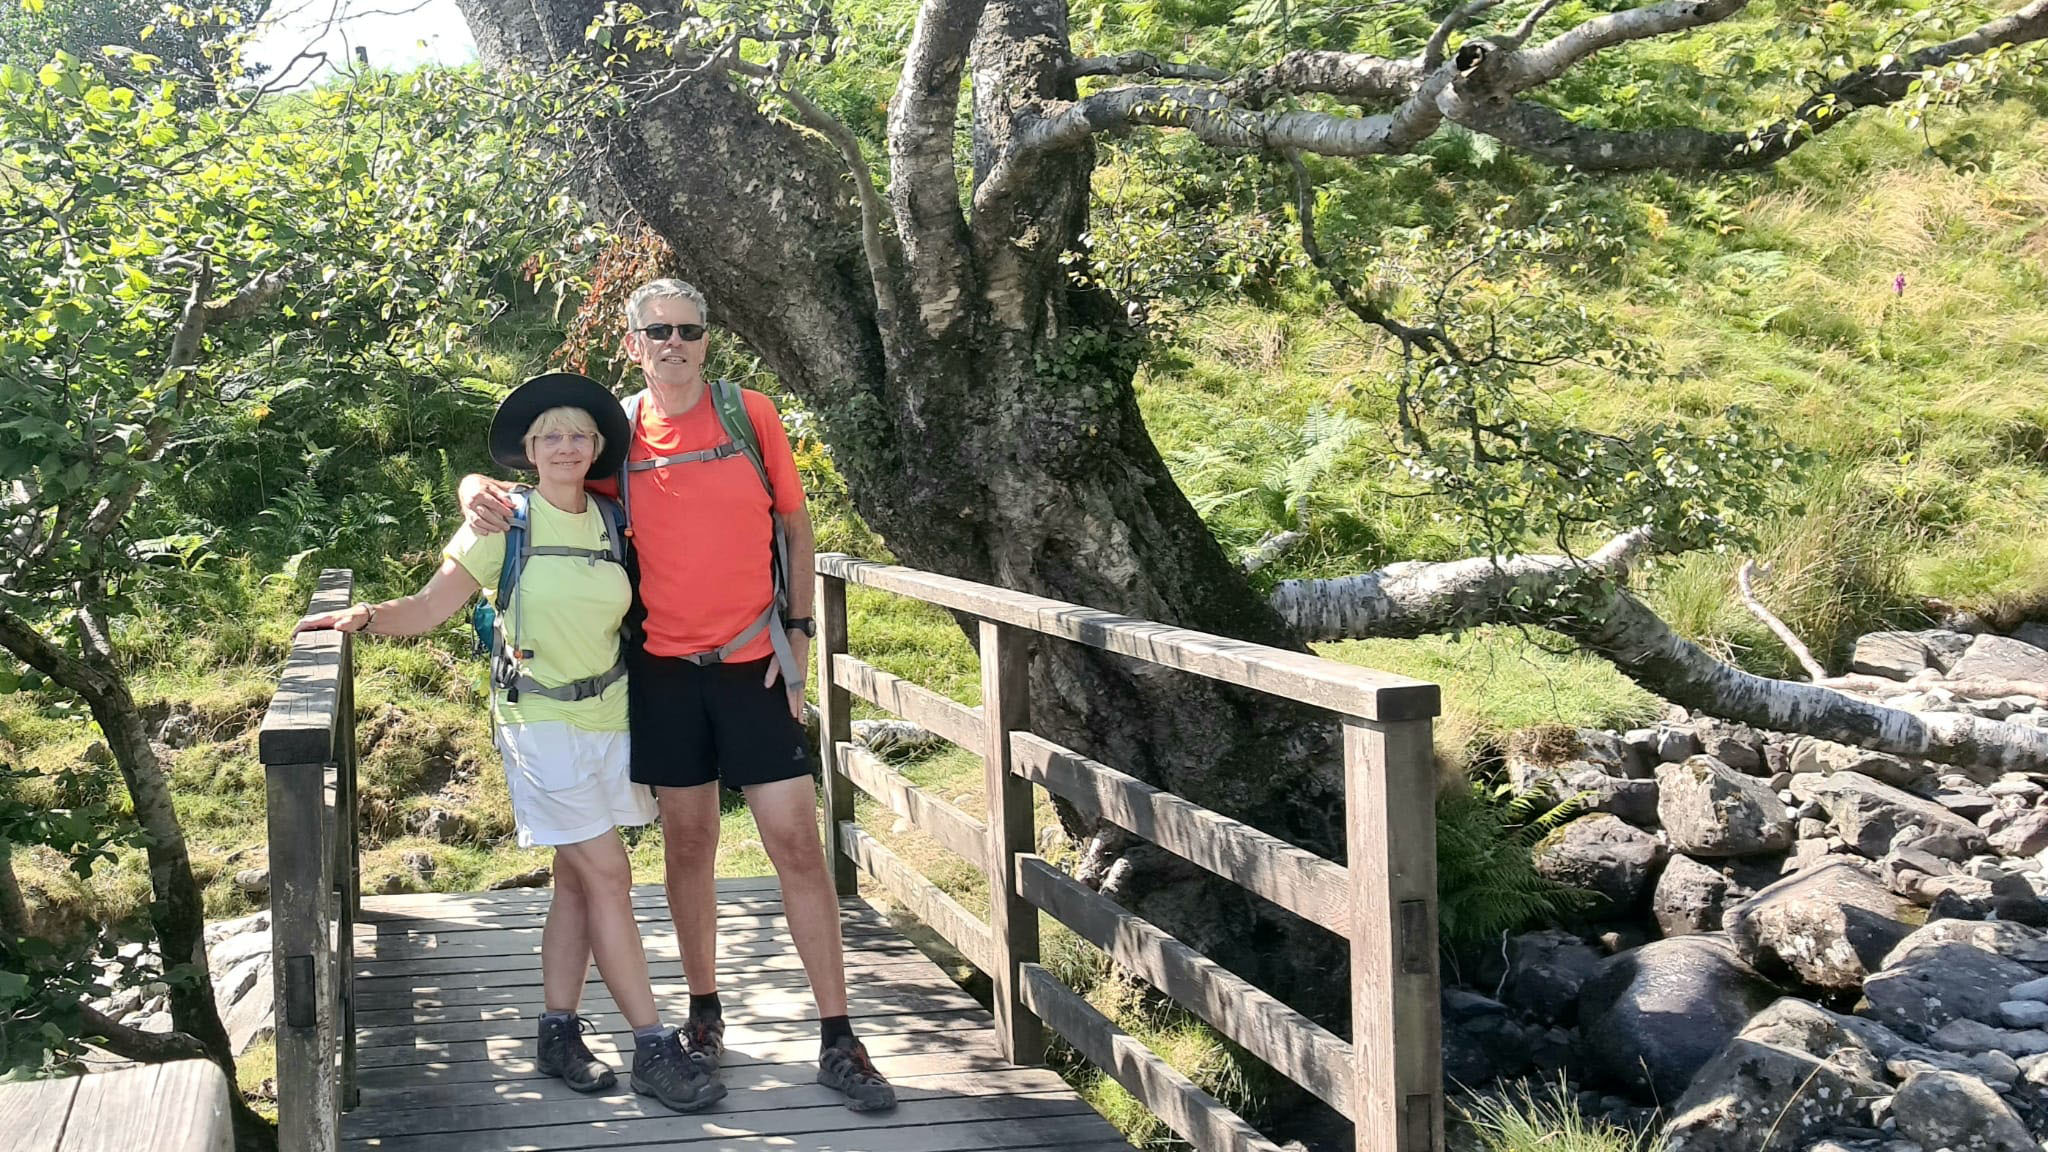 Is This Mutton bloggerr Gail Hanlon with husband on a hill walking holiday in the Lake District, north of England